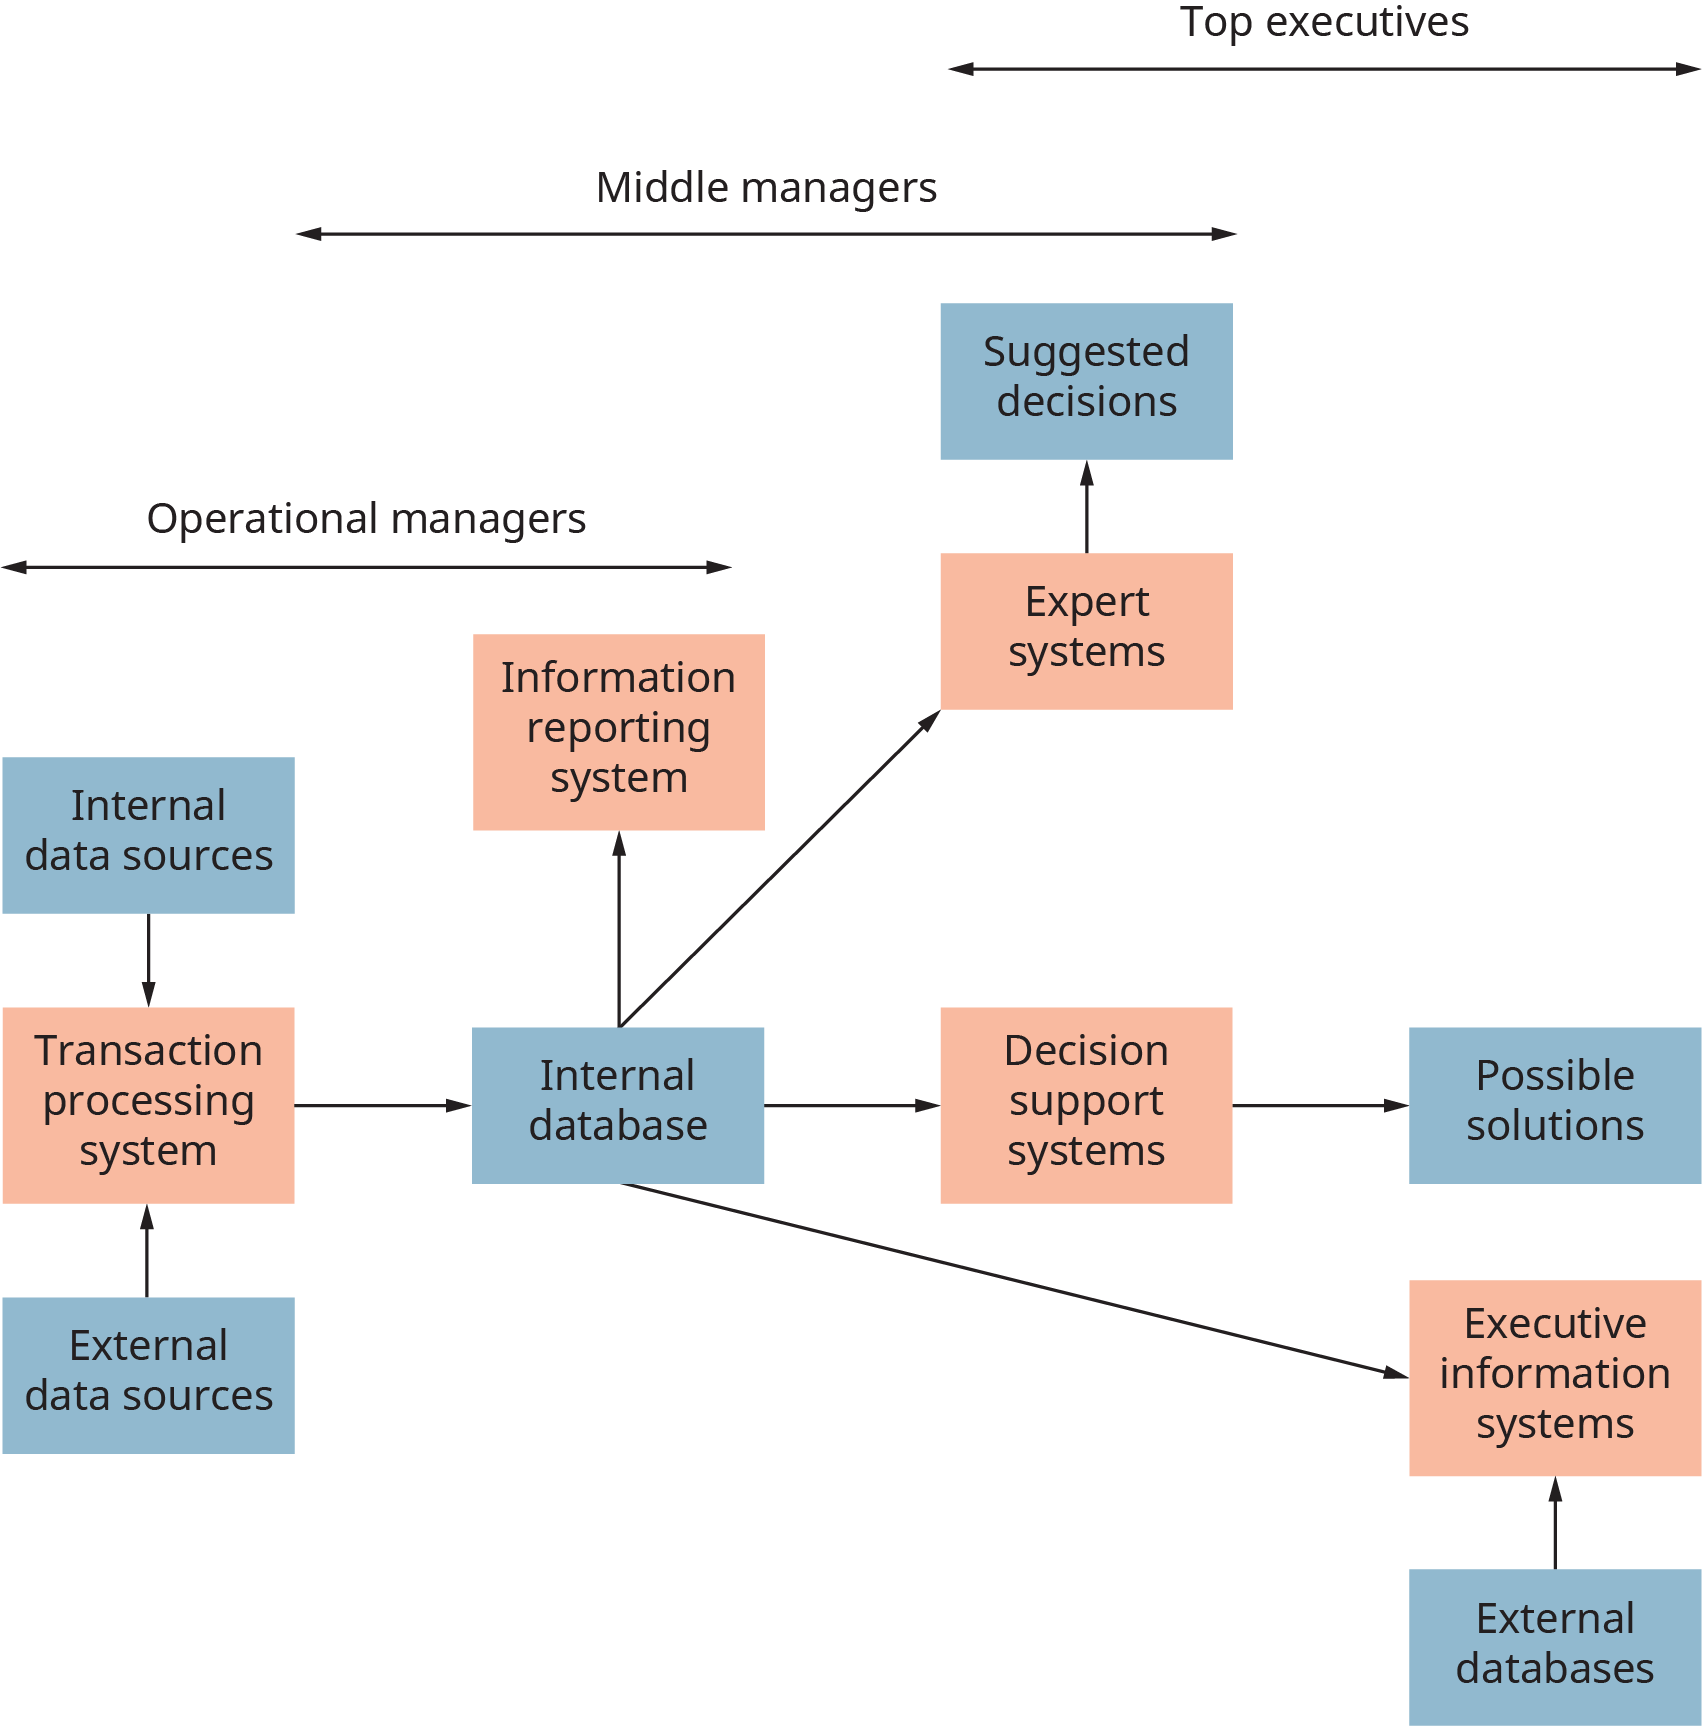 The Operational manager's domain is where internal and external data sources flow into a transaction processing system. This flows into an internal data base, and now is in the overlap domain of operational managers and middle managers. There are 4 branches from the internal database. First, information reporting system. The next 3 branches are overlapped by middle managers and top executives. Second branch goes to expert systems, and to suggested decisions. Third branch goes to decision support, then to possible solutions, under top executives only. The fourth branch goes to executive information systems, which are fed by external databases, and are top executive domain.